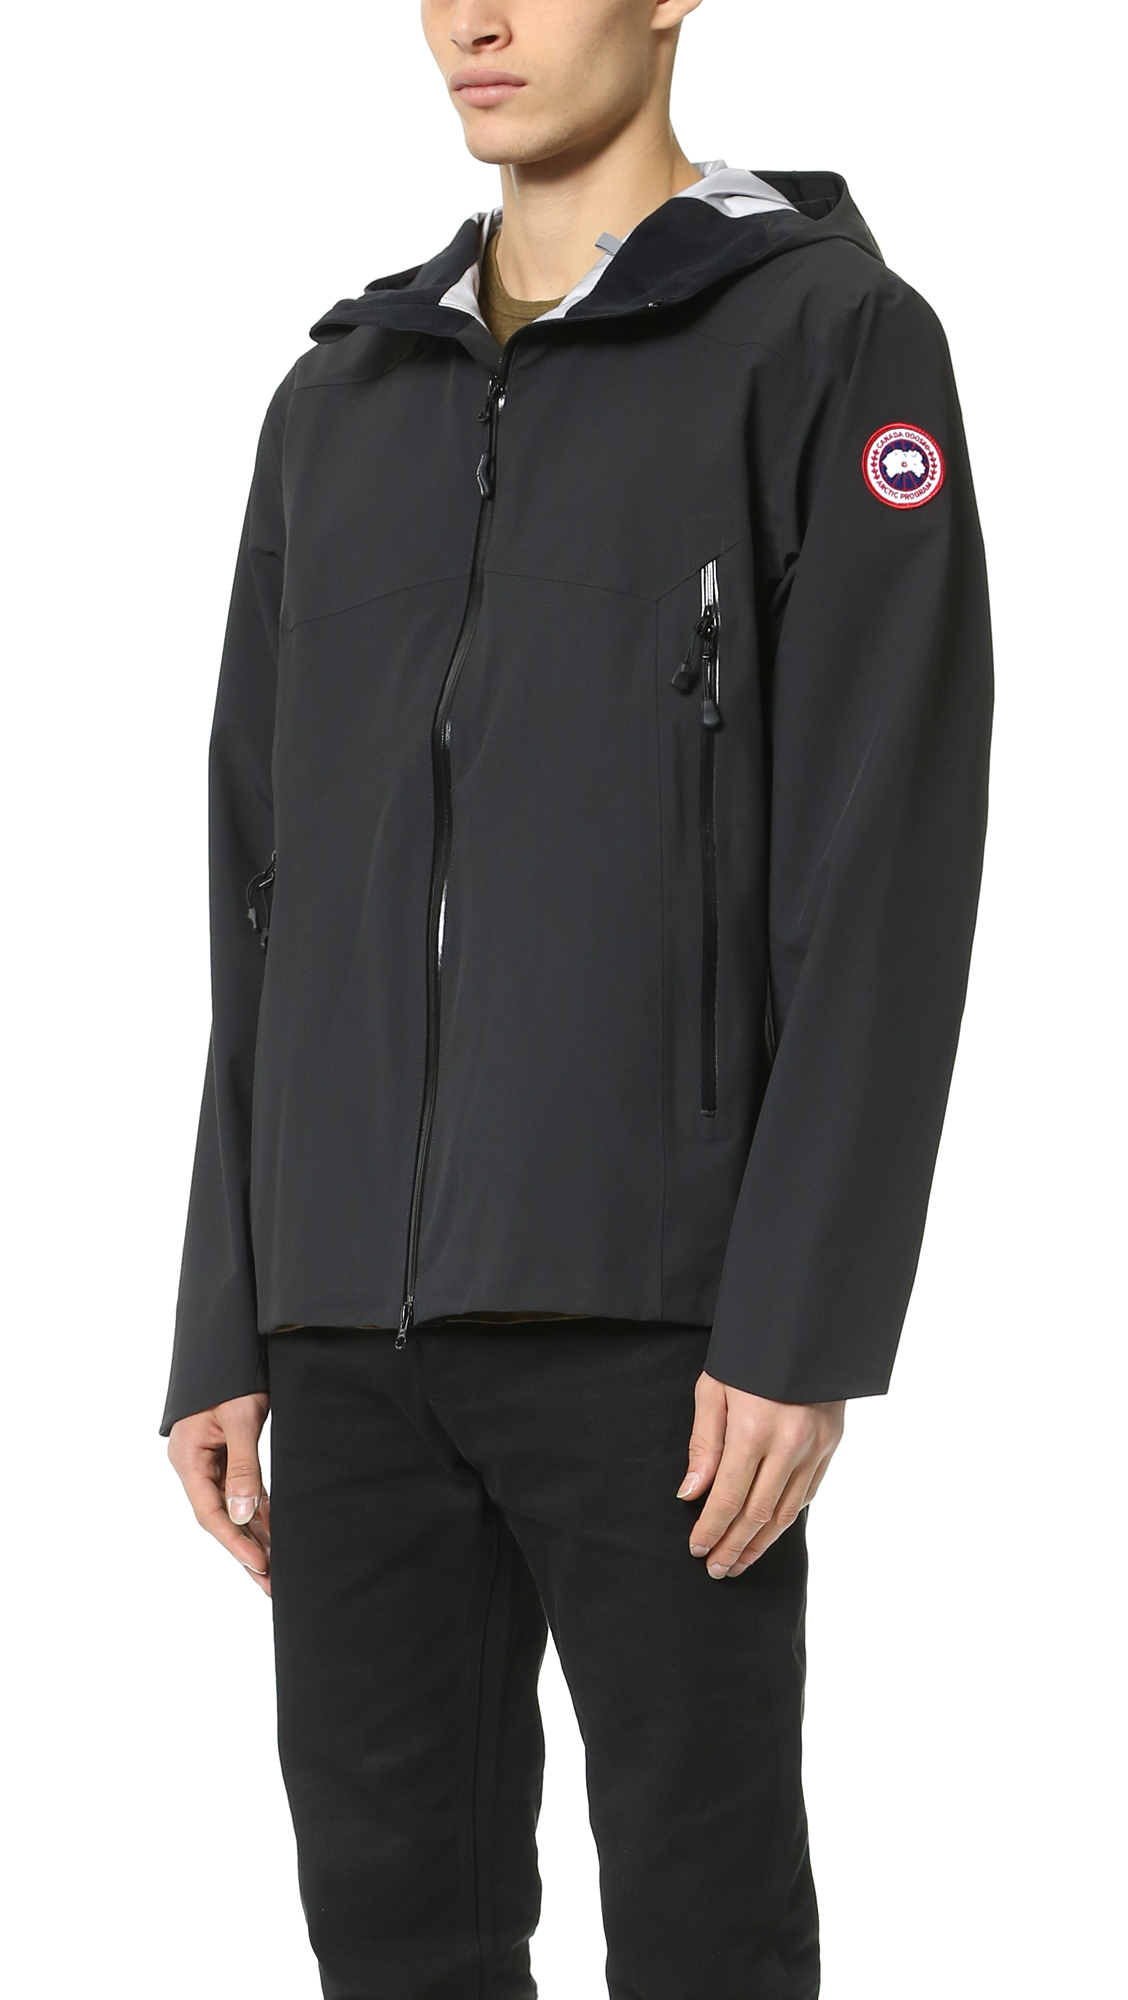 Canada Goose kids sale shop - Canada Goose Lodge Jacket | EAST DANE